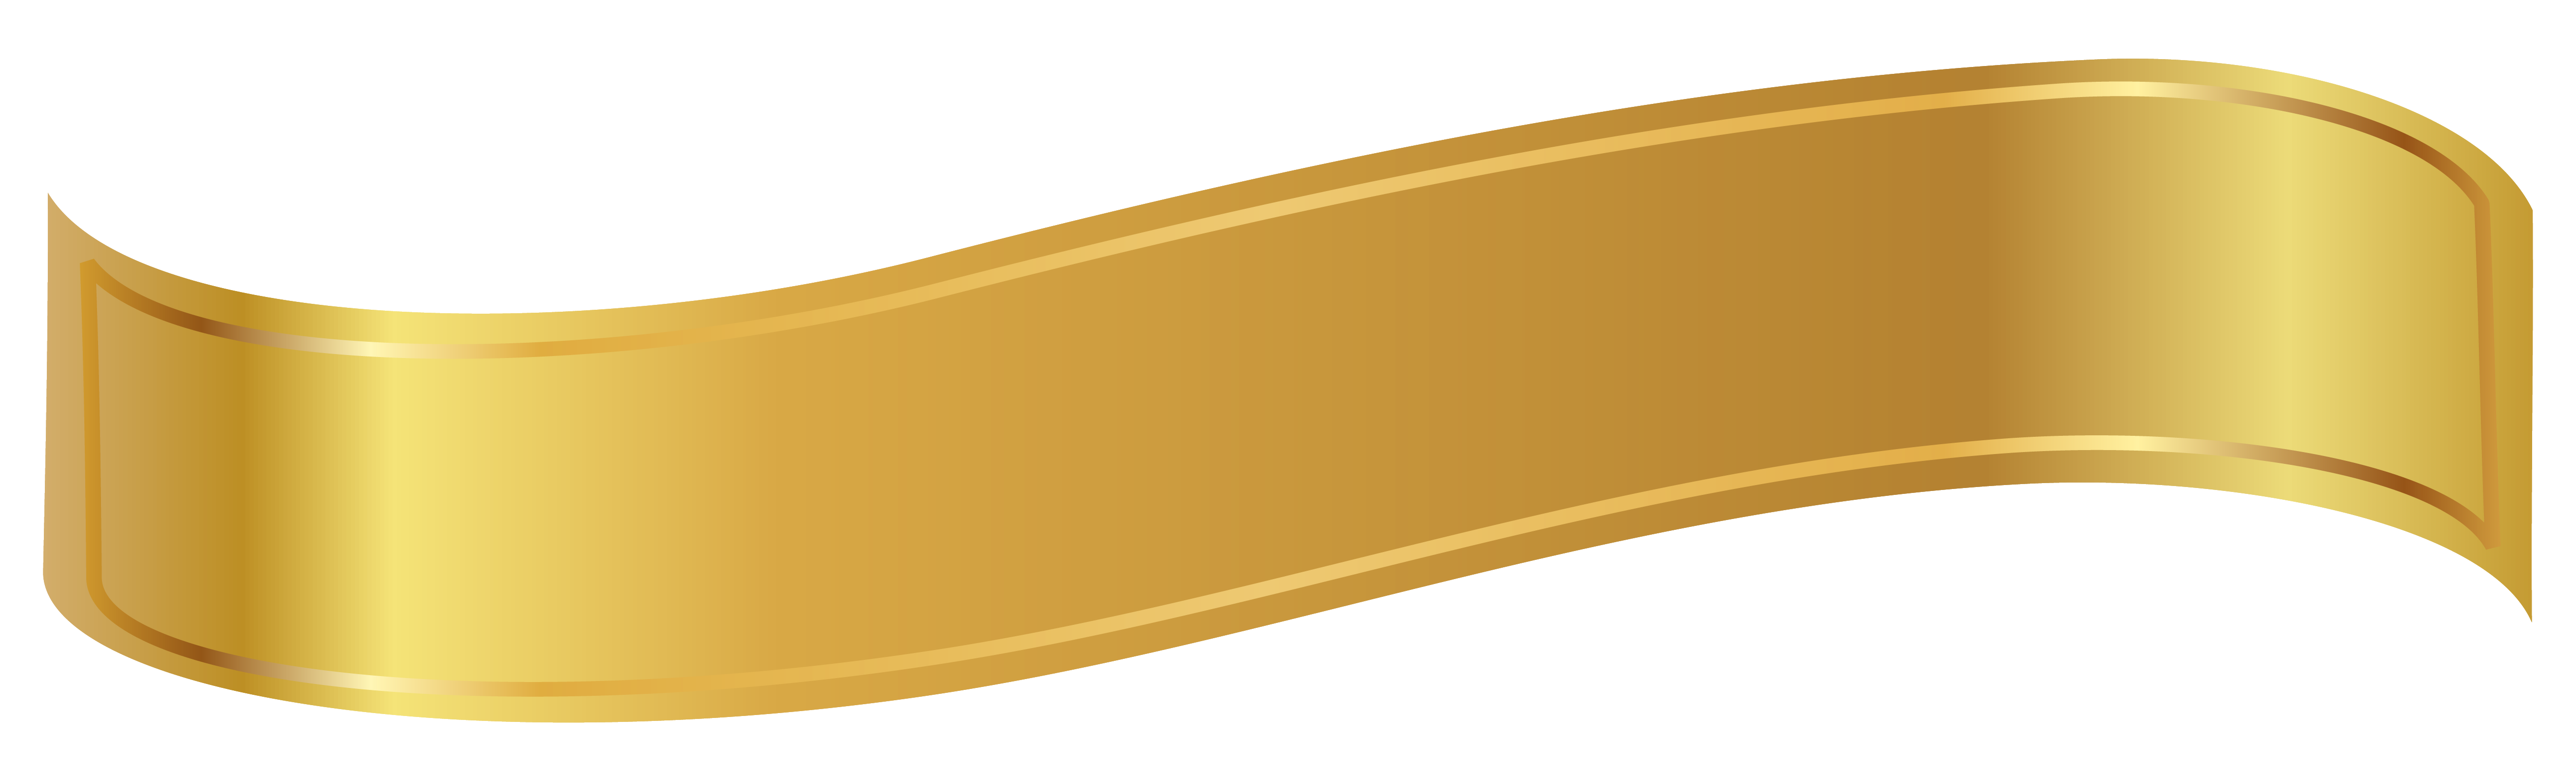 Scroll clipart gold. Banner png image banners